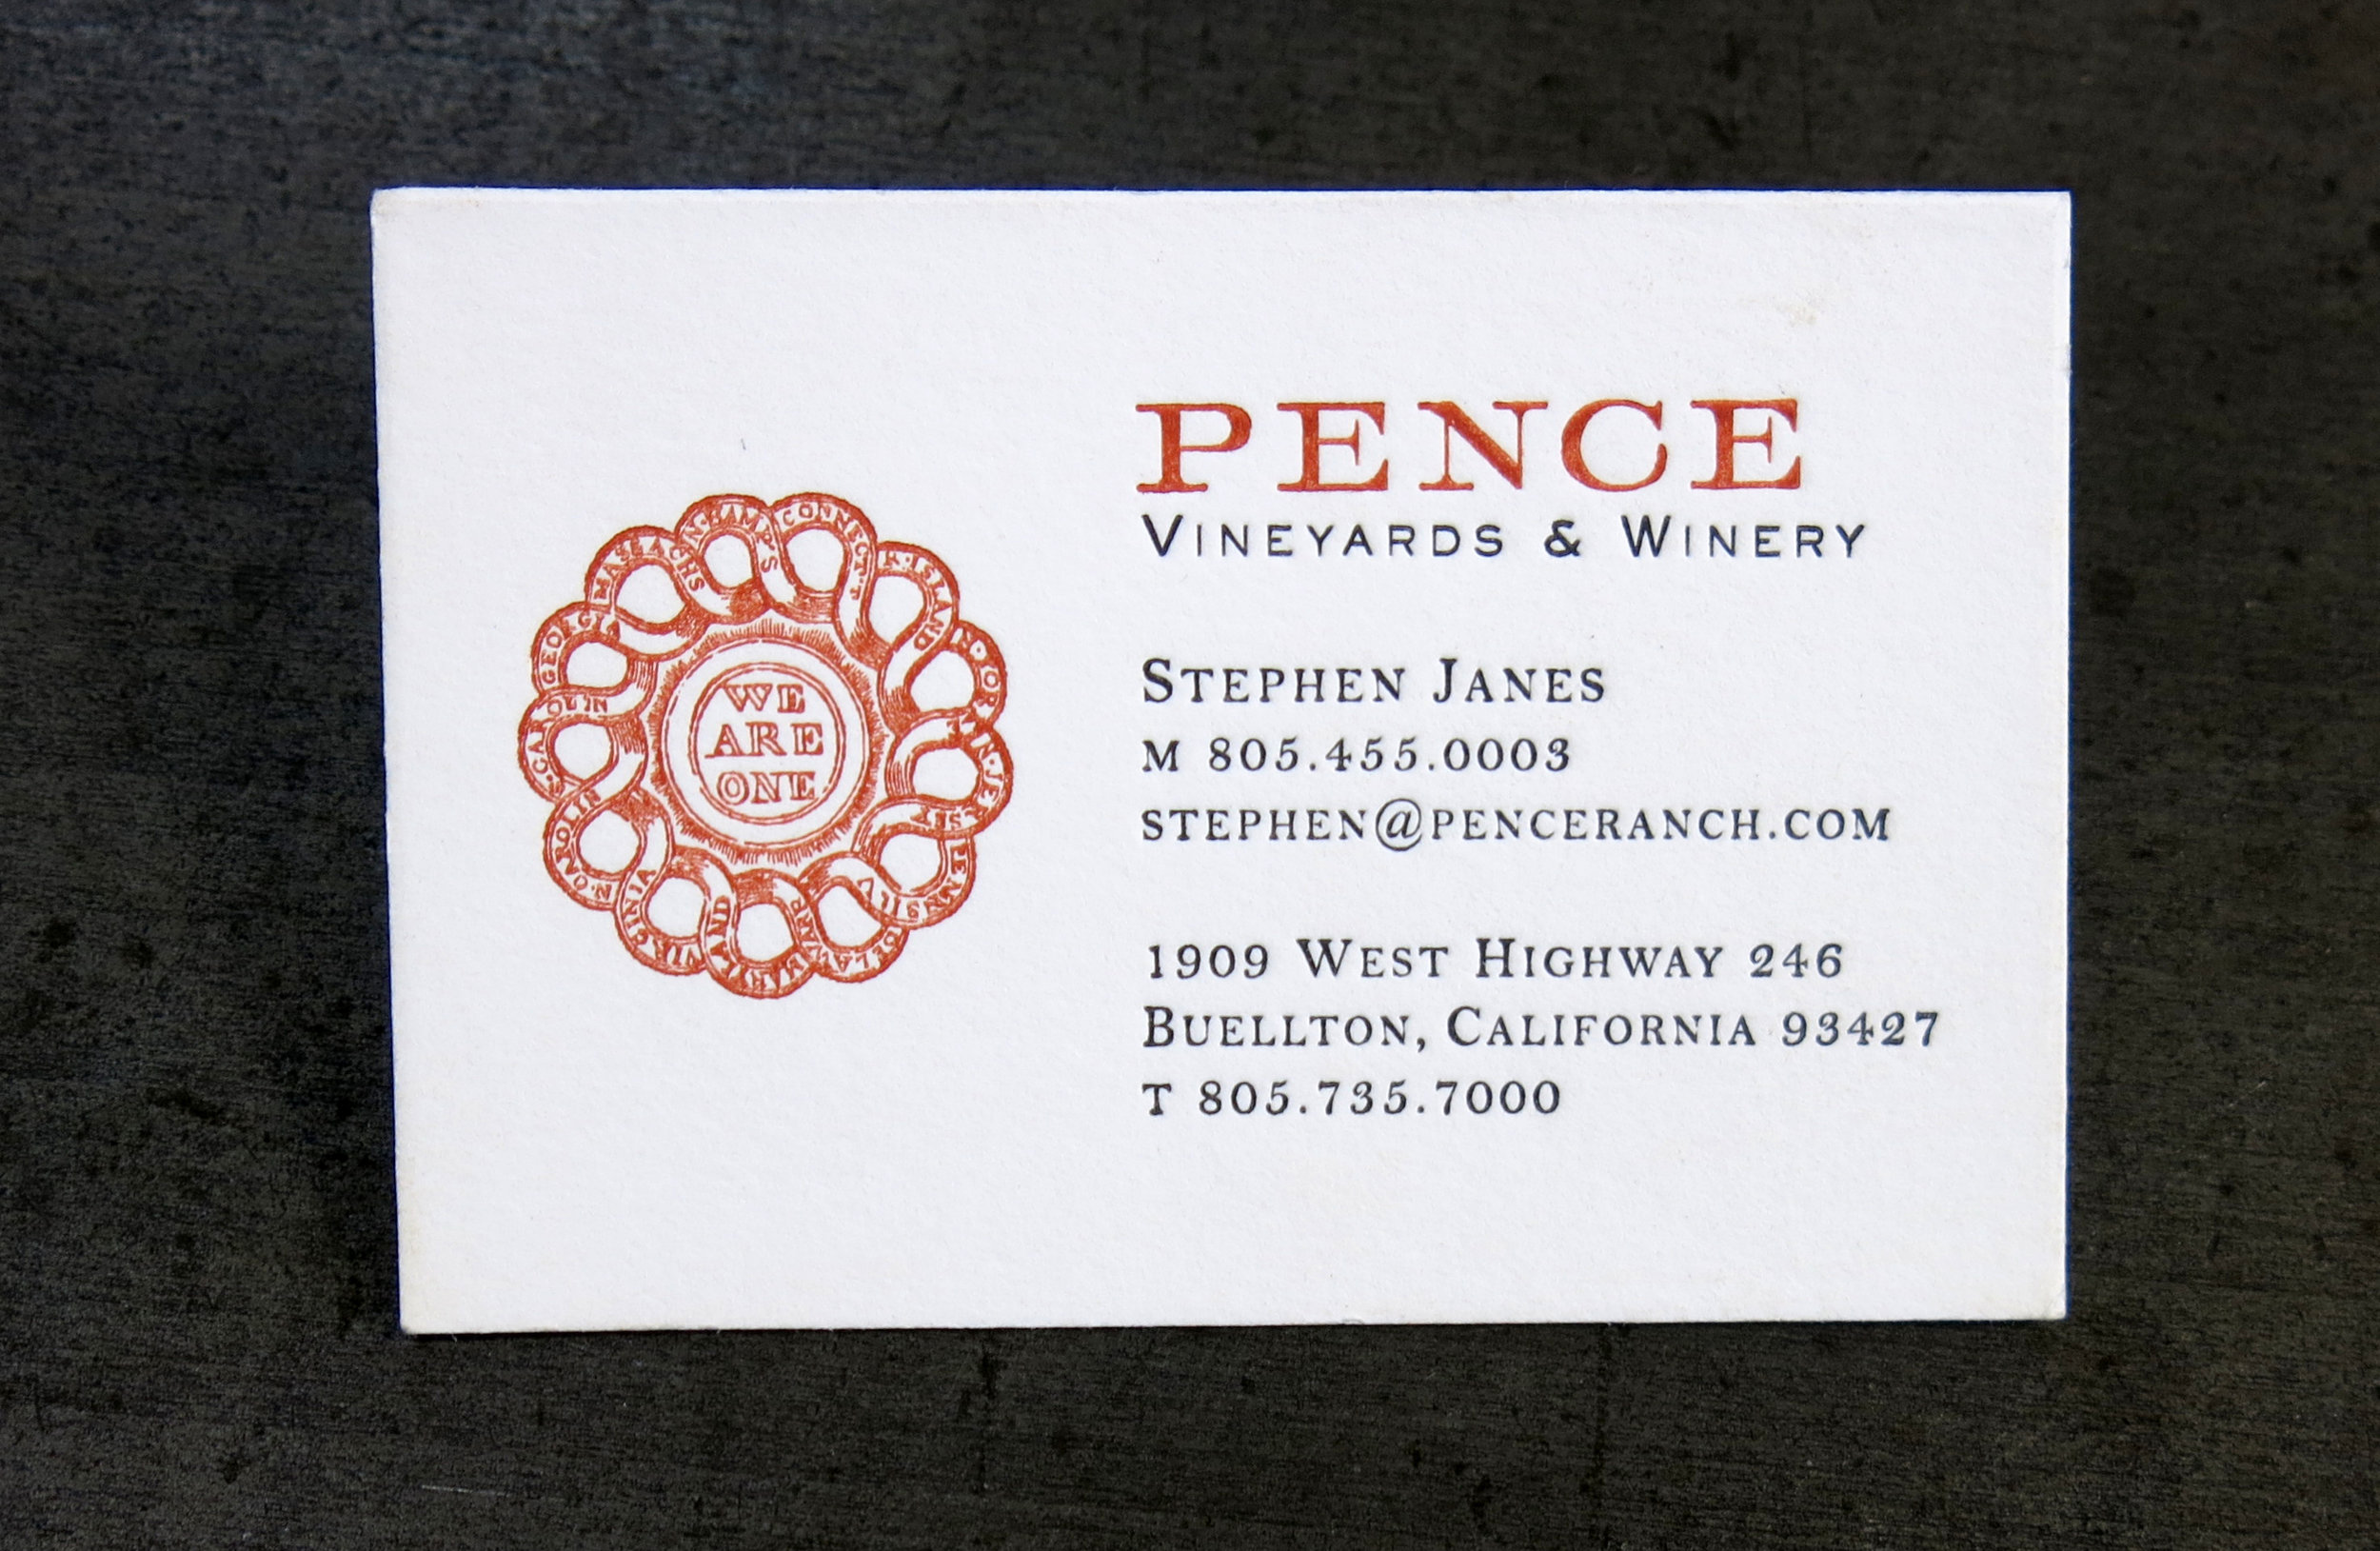 Pence front IMG_2151.jpg